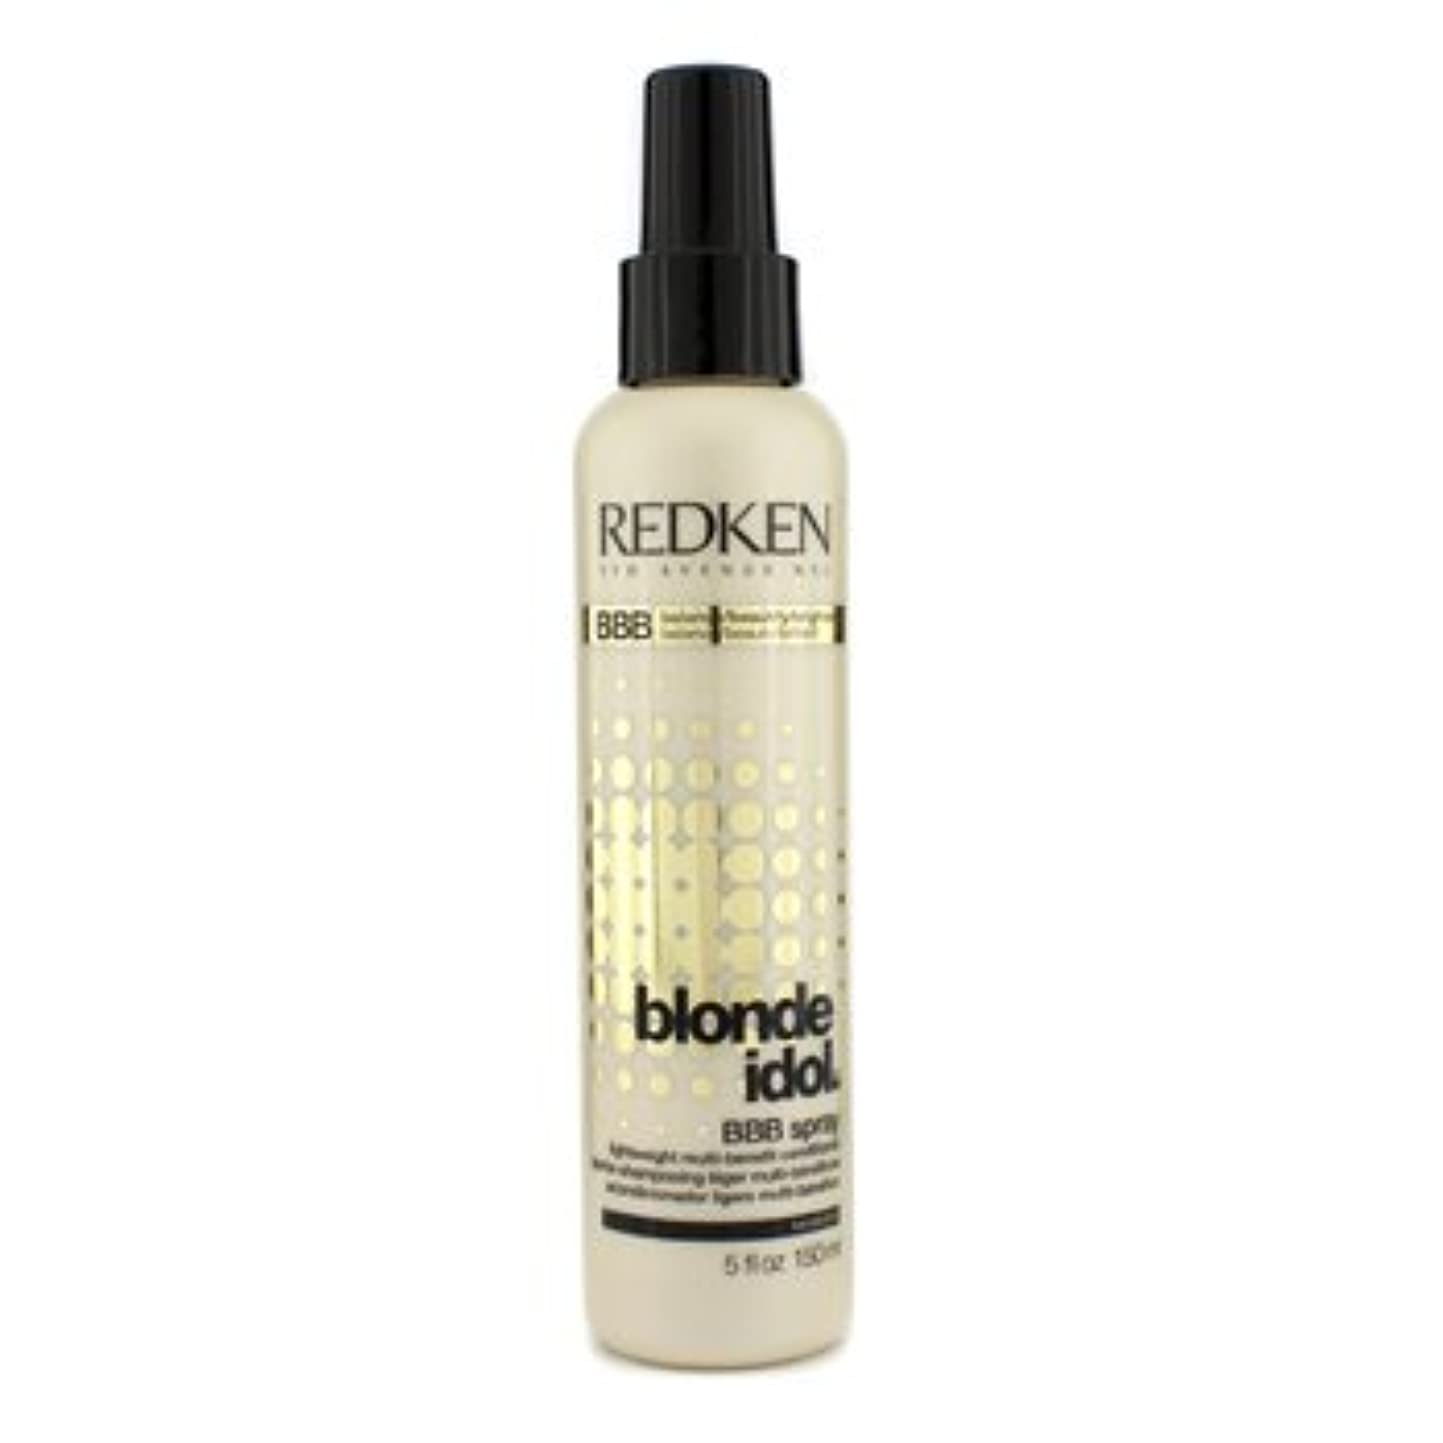 飢え言語学疾患[Redken] Blonde Idol BBB Spray Lightweight Multi-Benefit Conditioner (For Beautiful Blonde Hair) 150ml/5oz